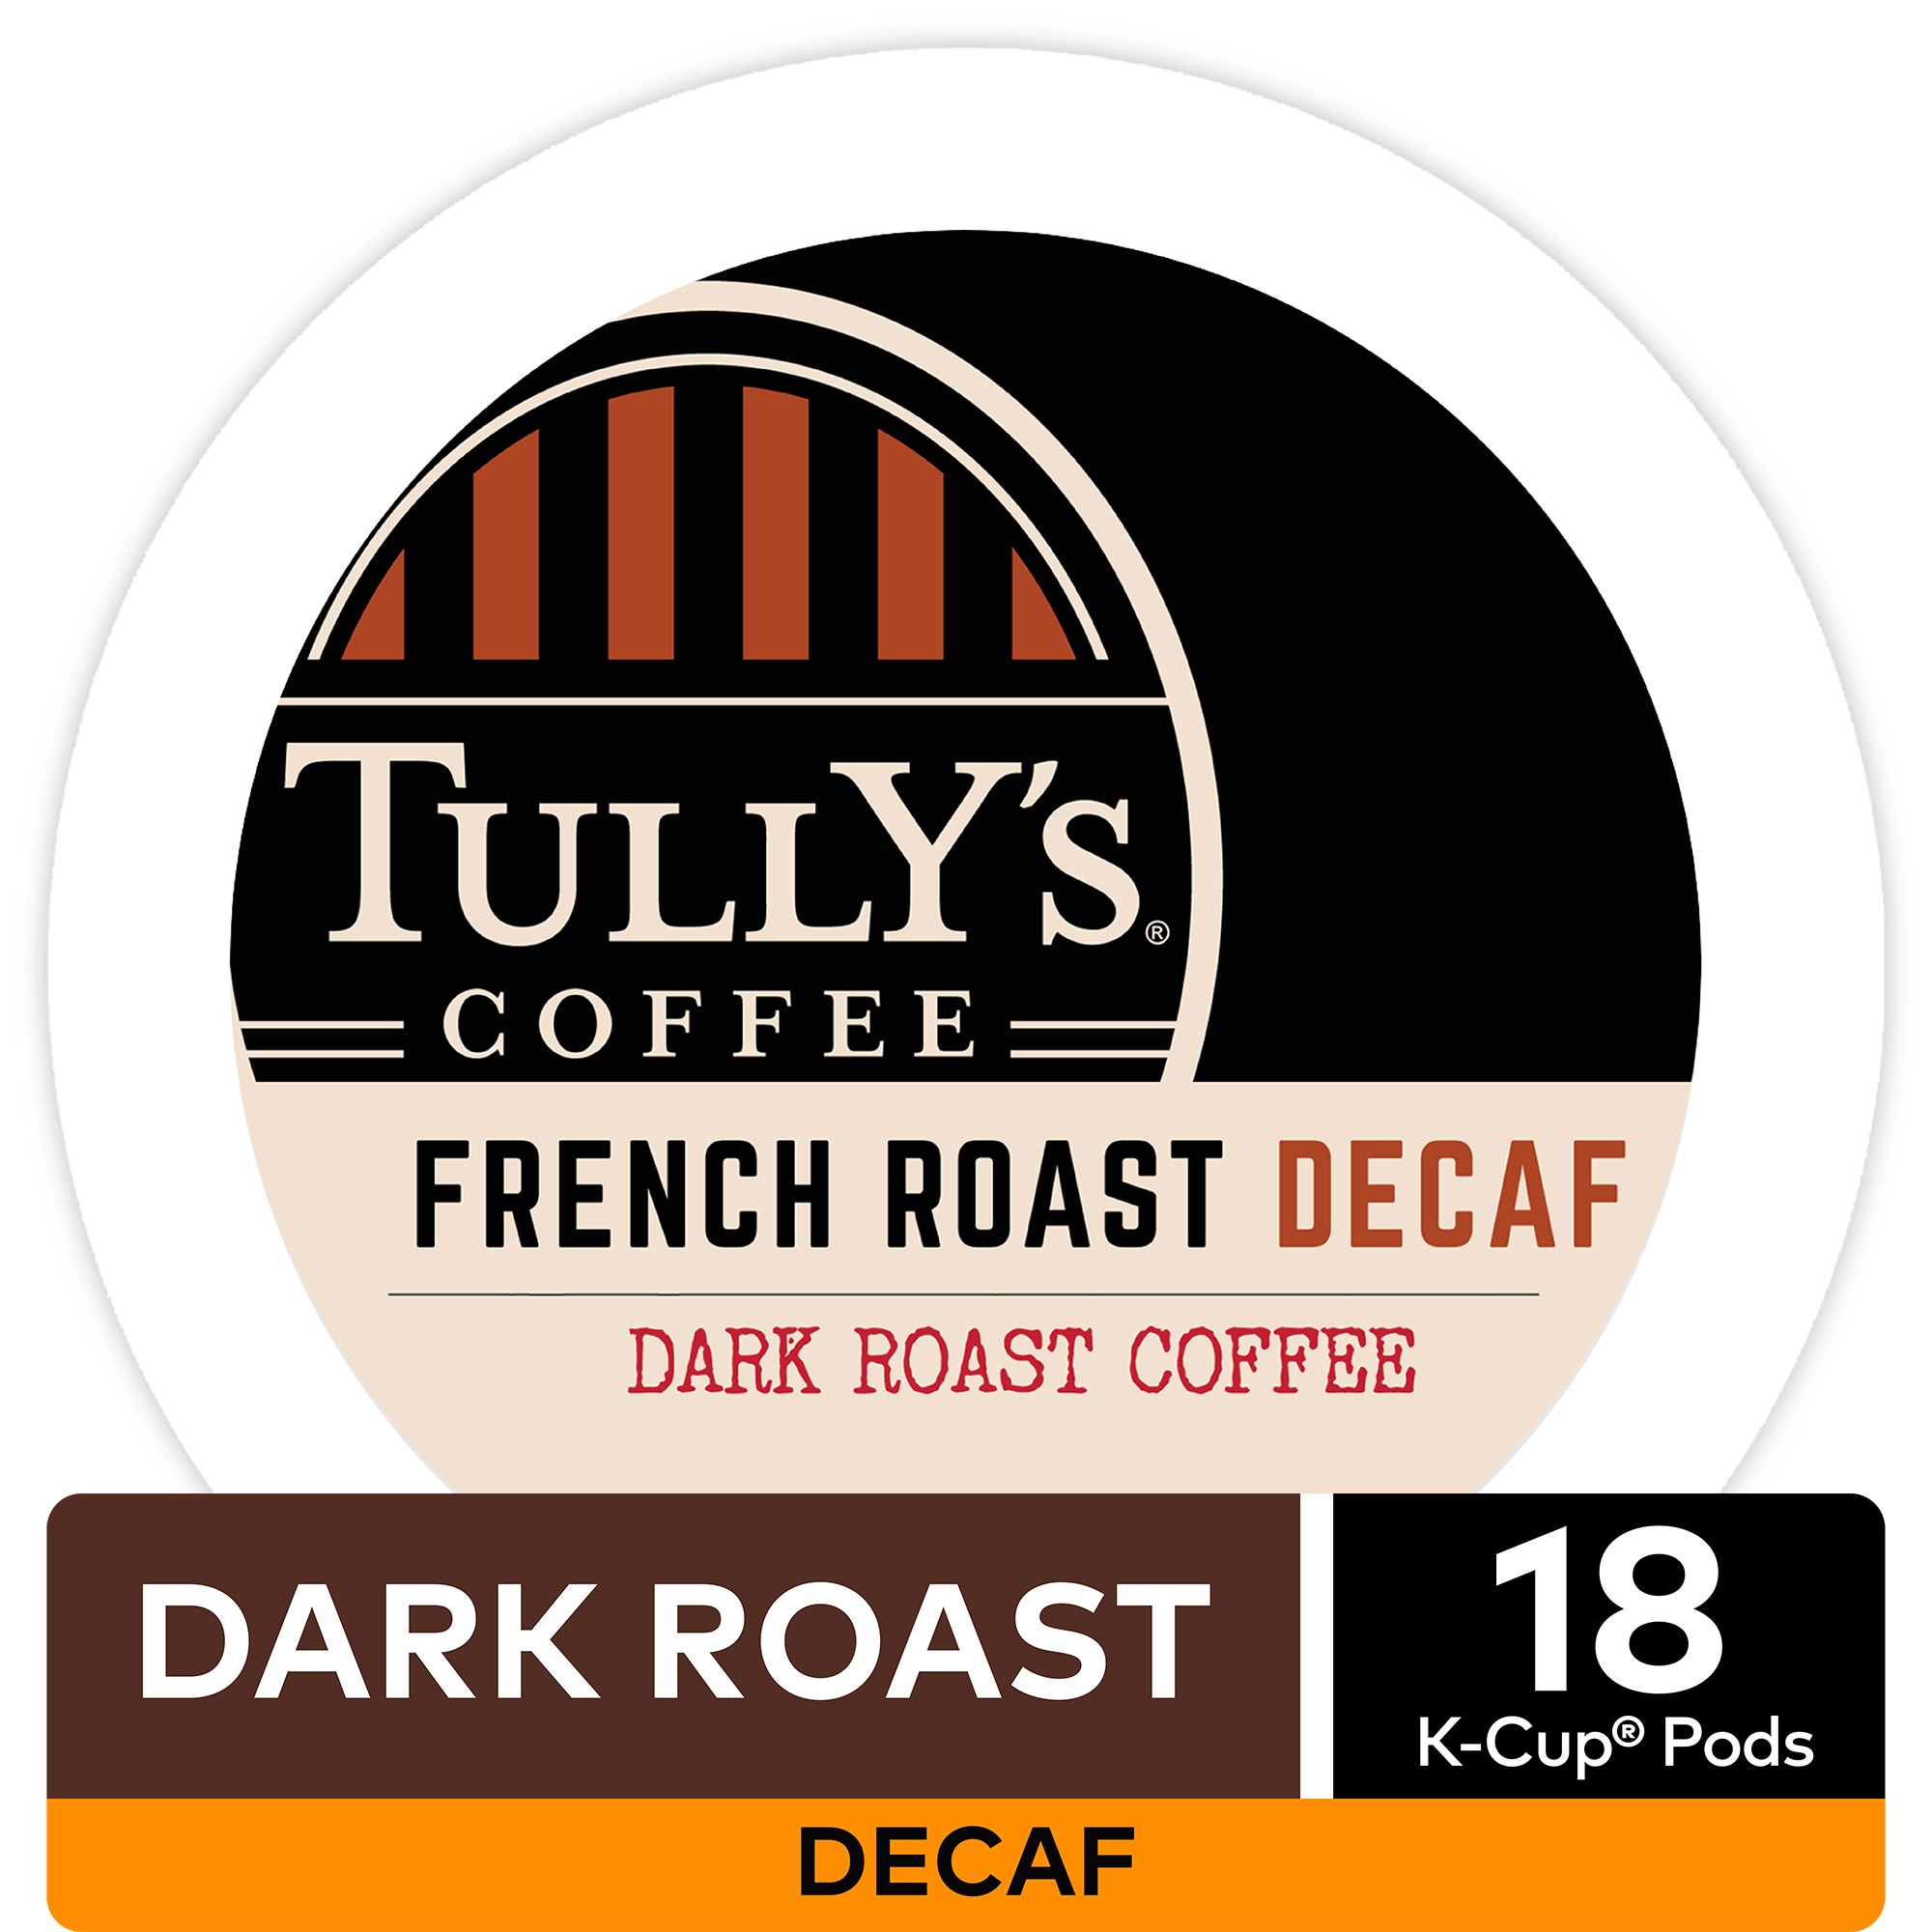 Tully's Coffee French Roast Decaf Coffee, Keurig K-Cup Pods, Dark Roast, 18 Count